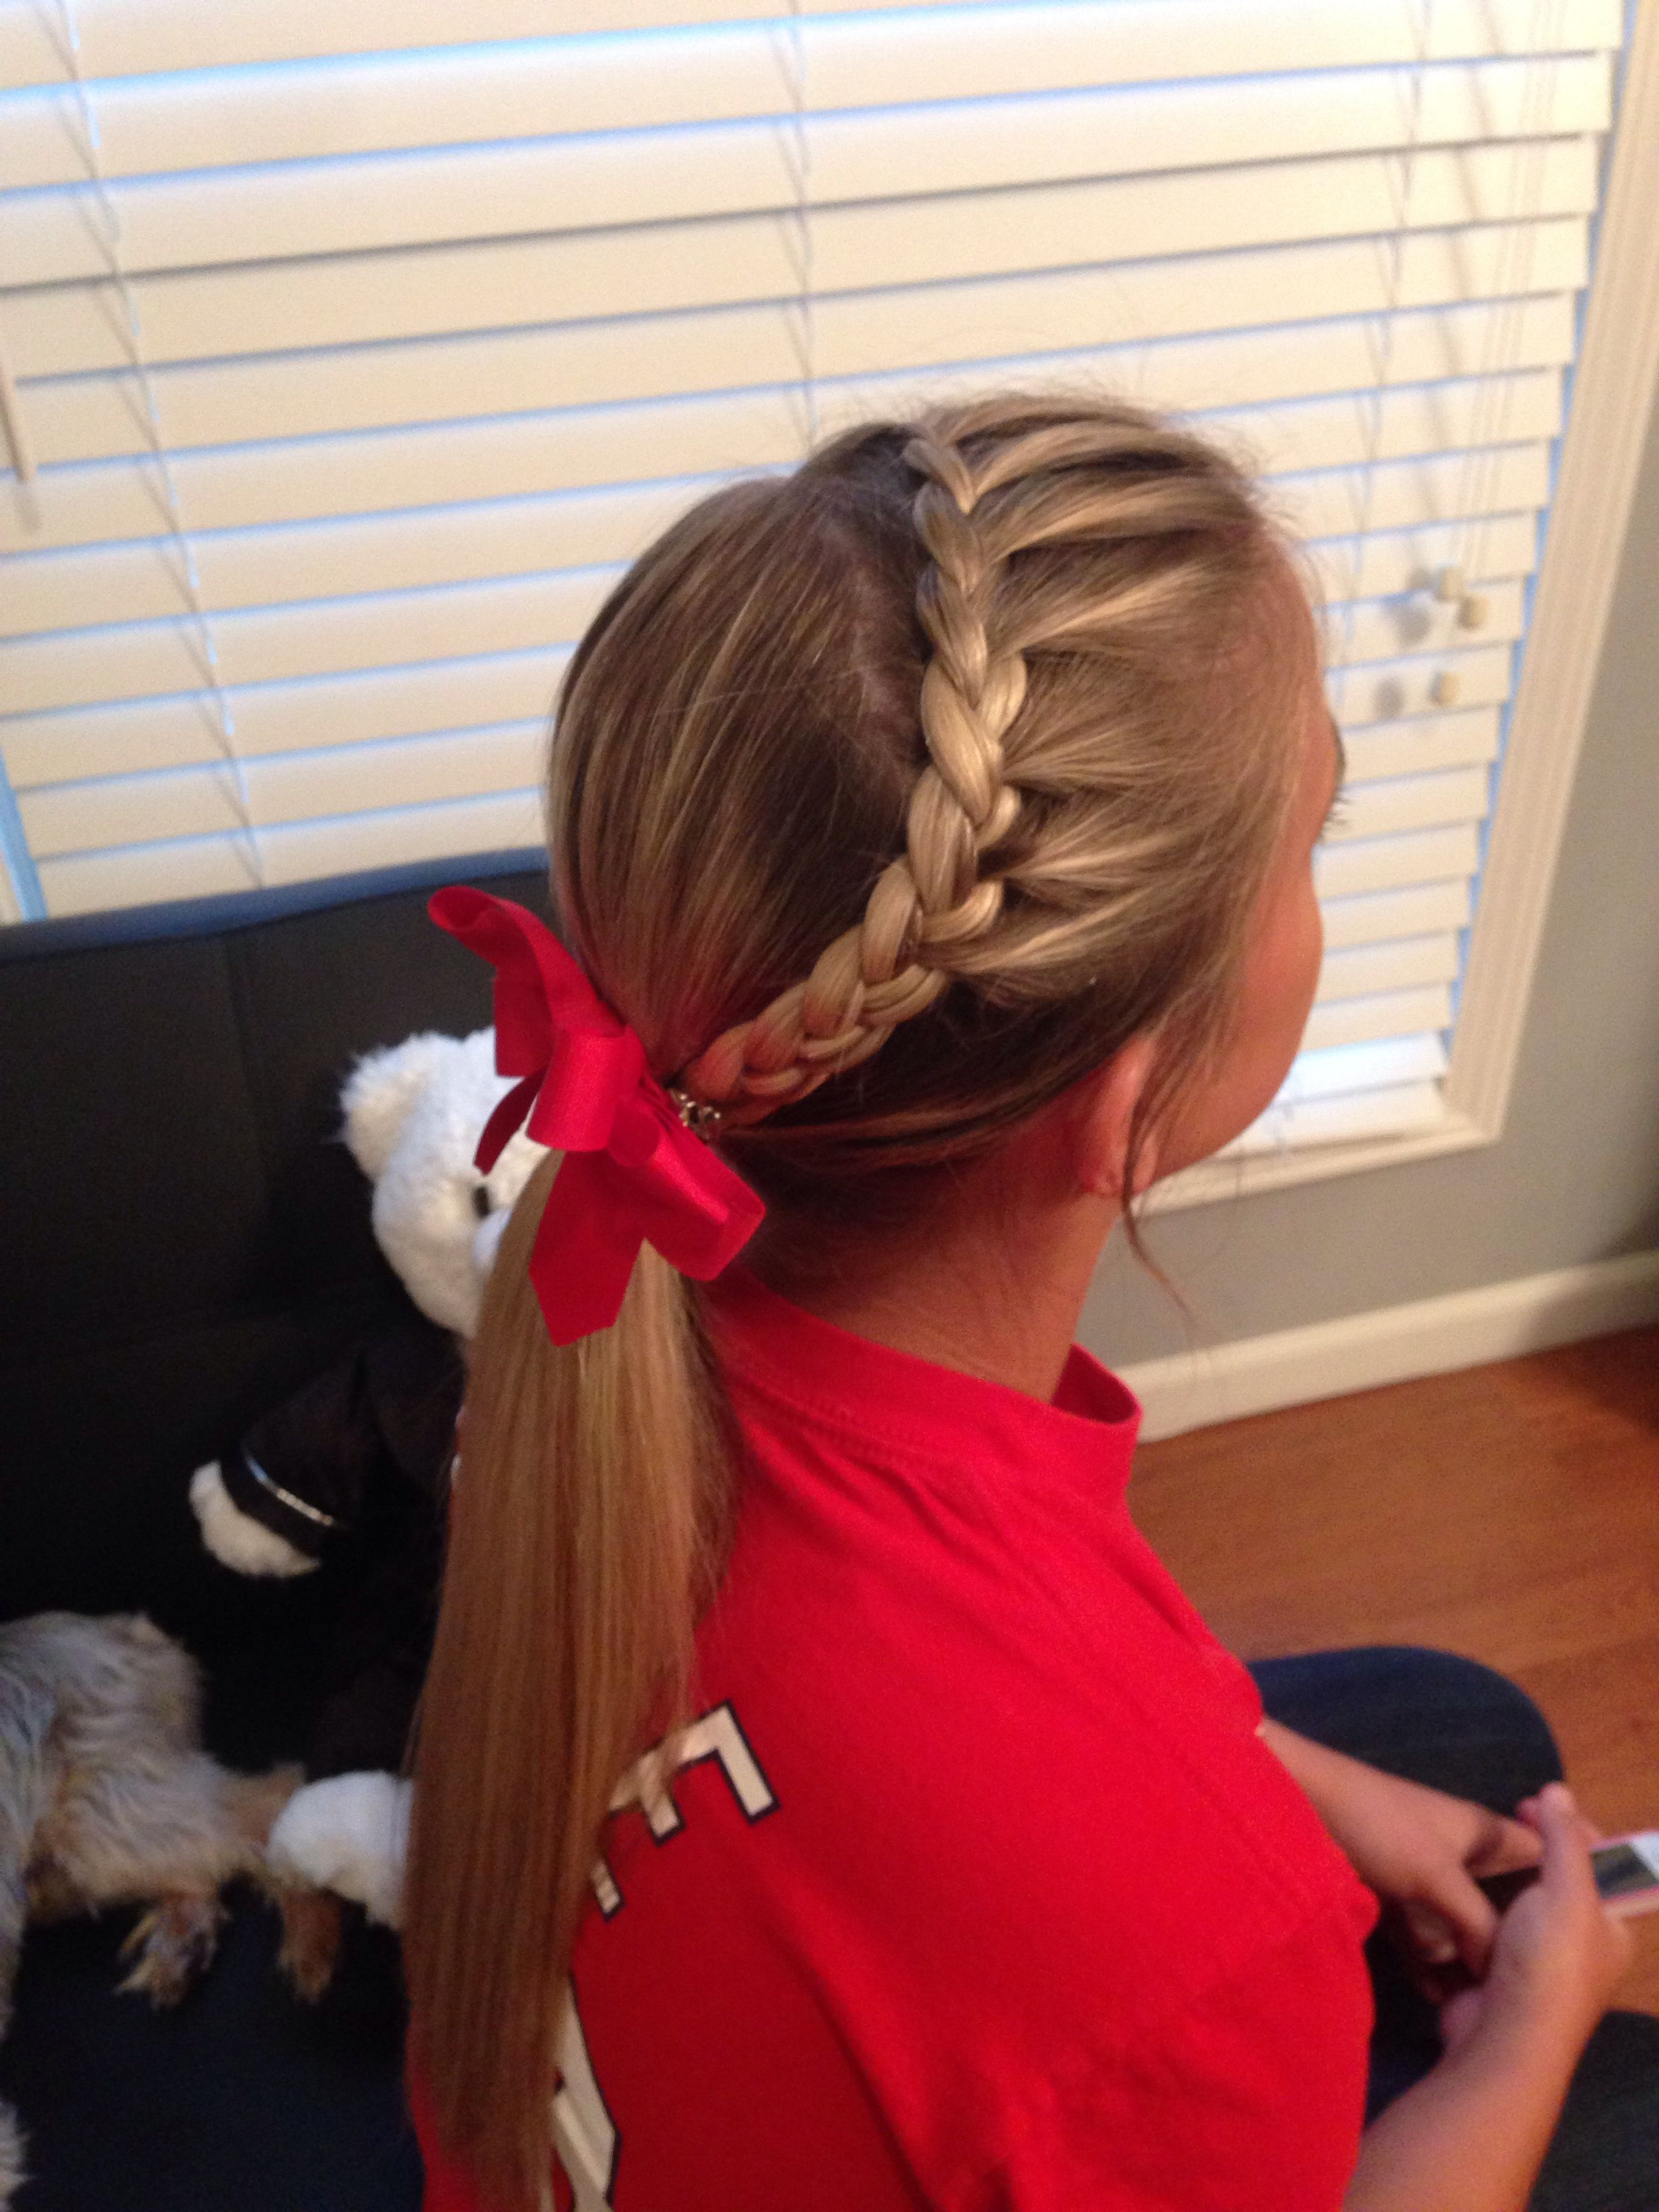 Softball hair only french braid hair in from front cute hair